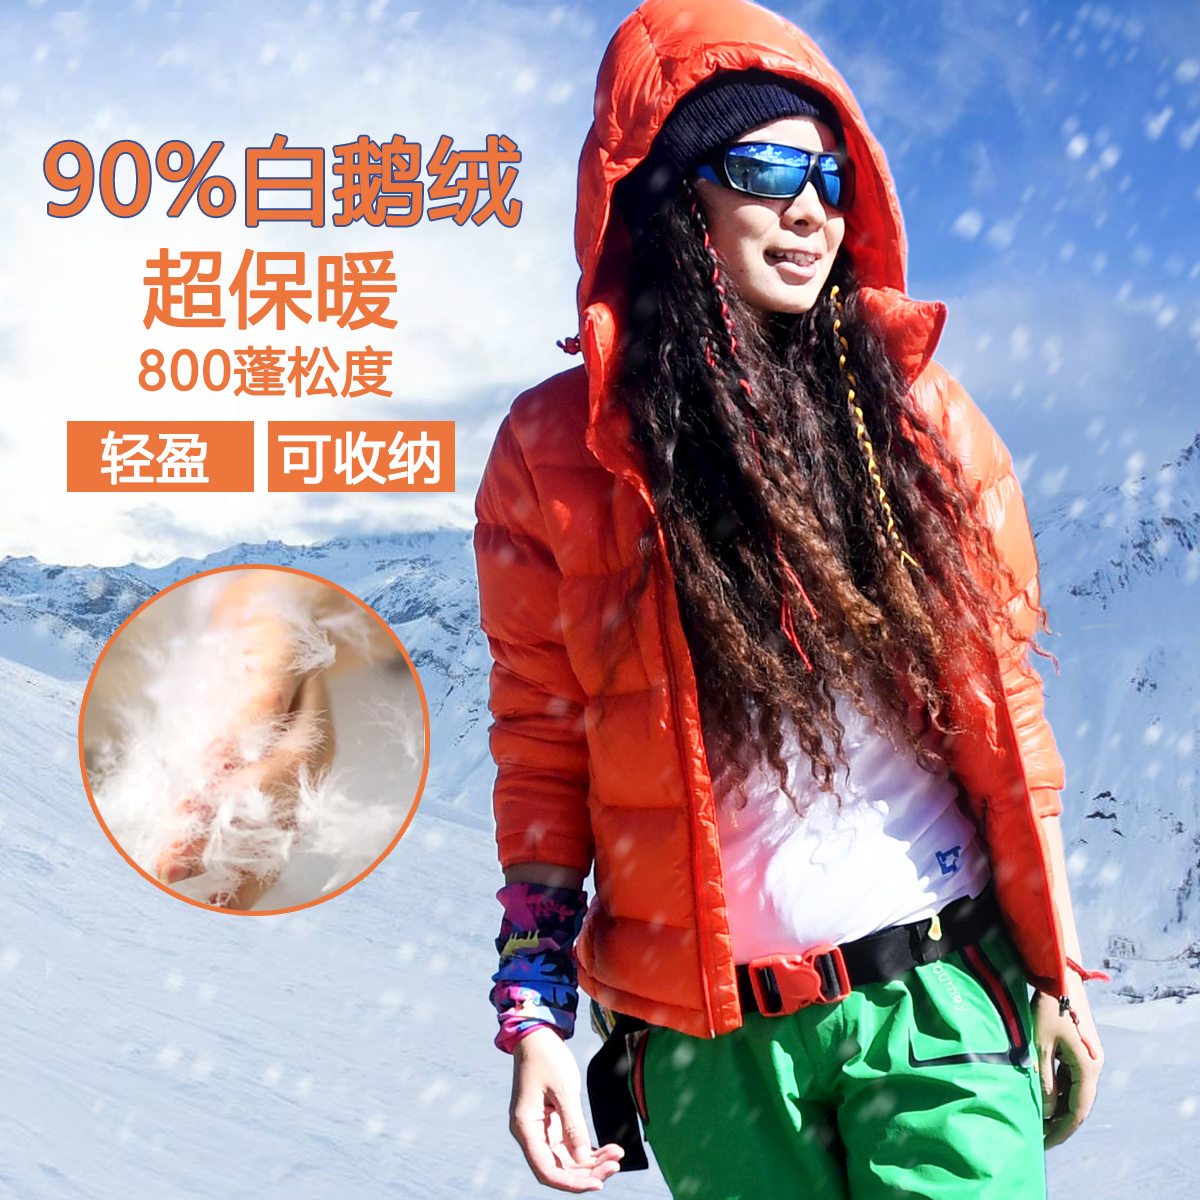 Beijing forest outdoor warm white goose down jacket can accept water-proof breathable cap for men and women [fitted version]